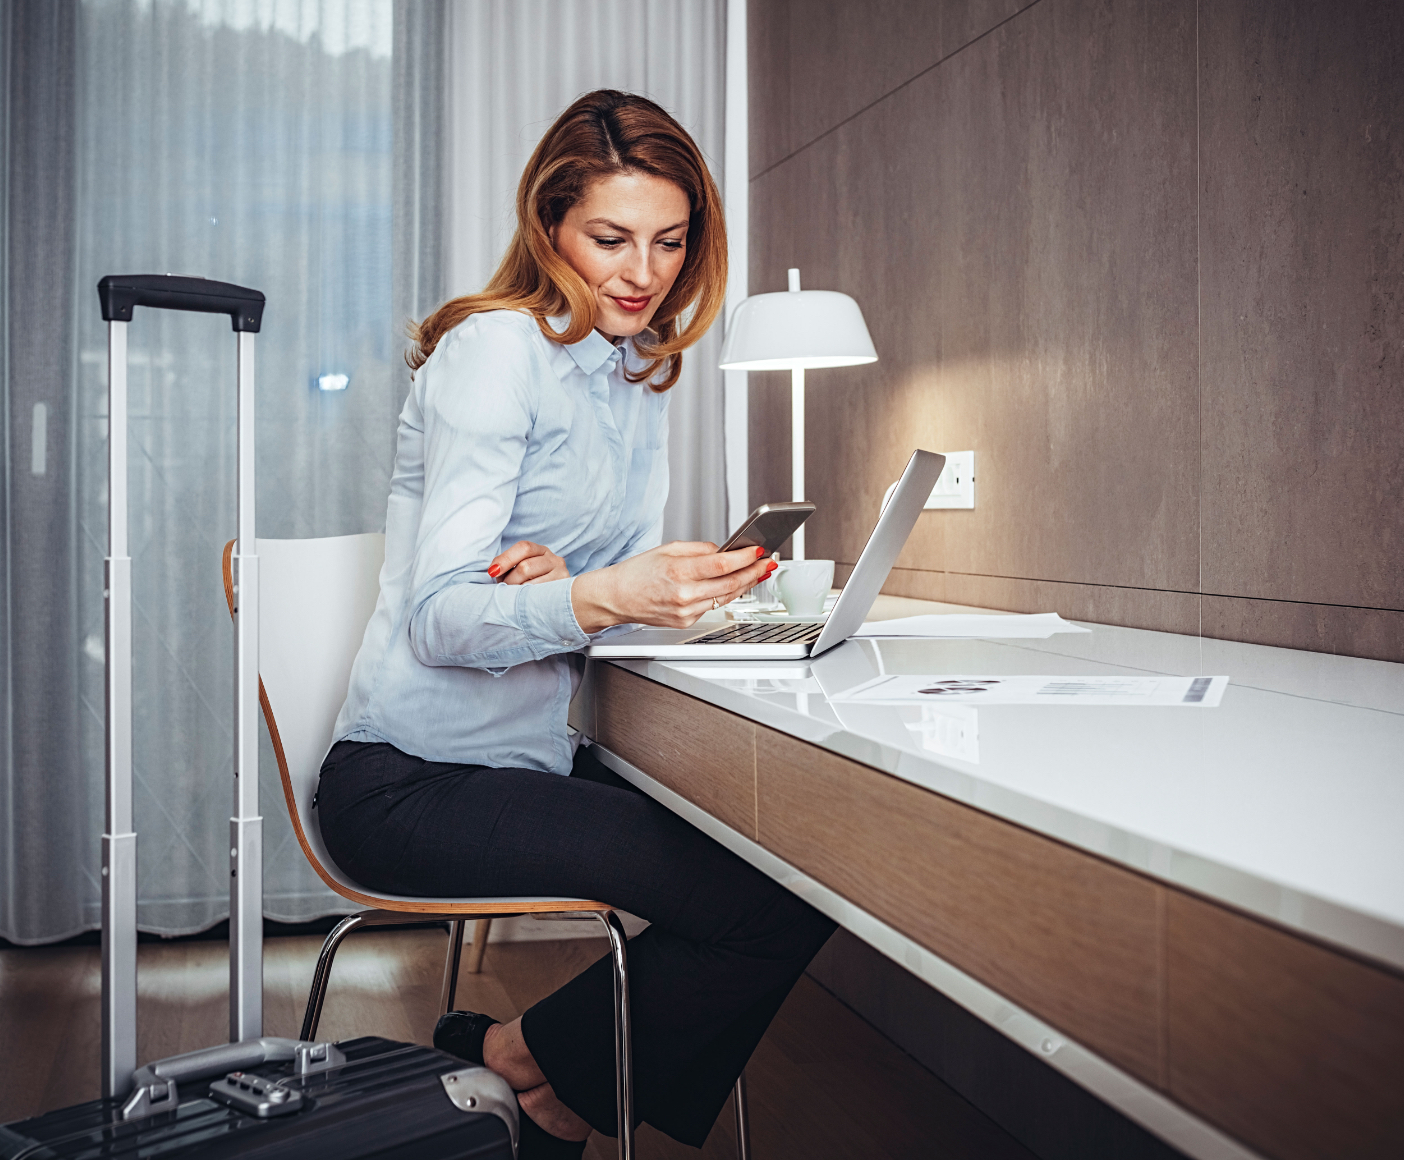 Woman looking at phone in hotel room